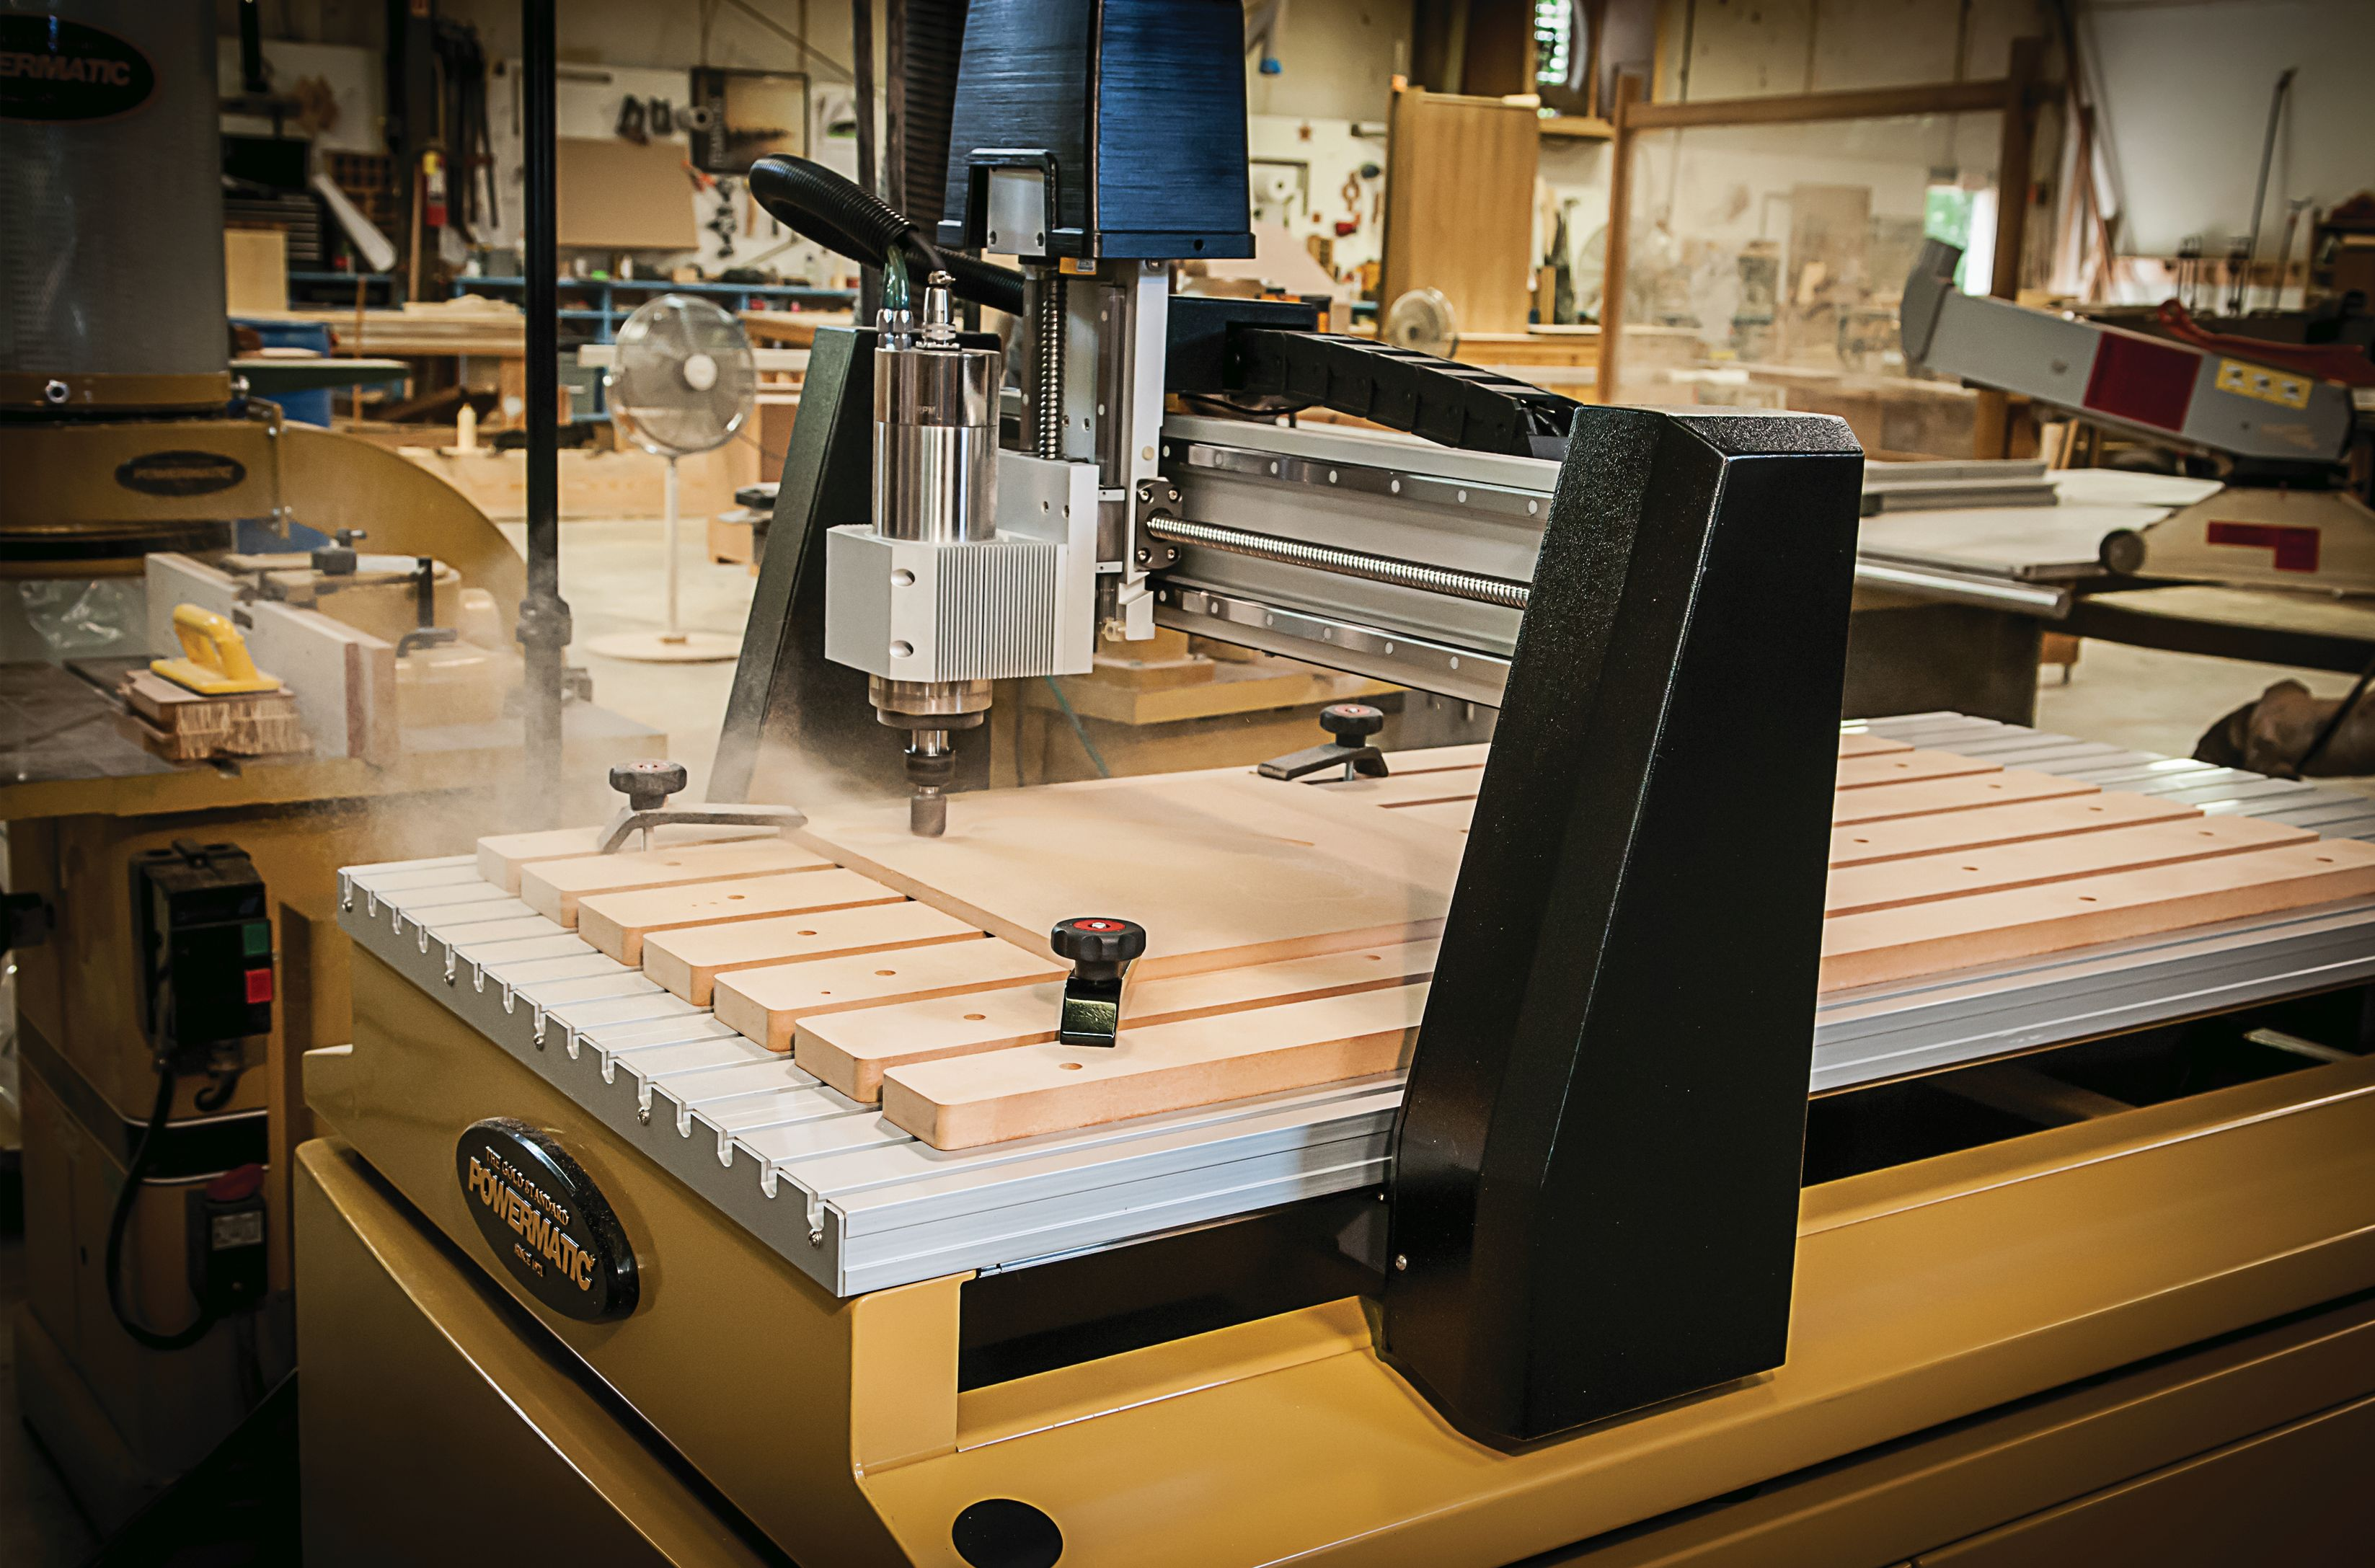 2 New Mid Size CNC Woodworking Routers from Powermatic - Tool Craze